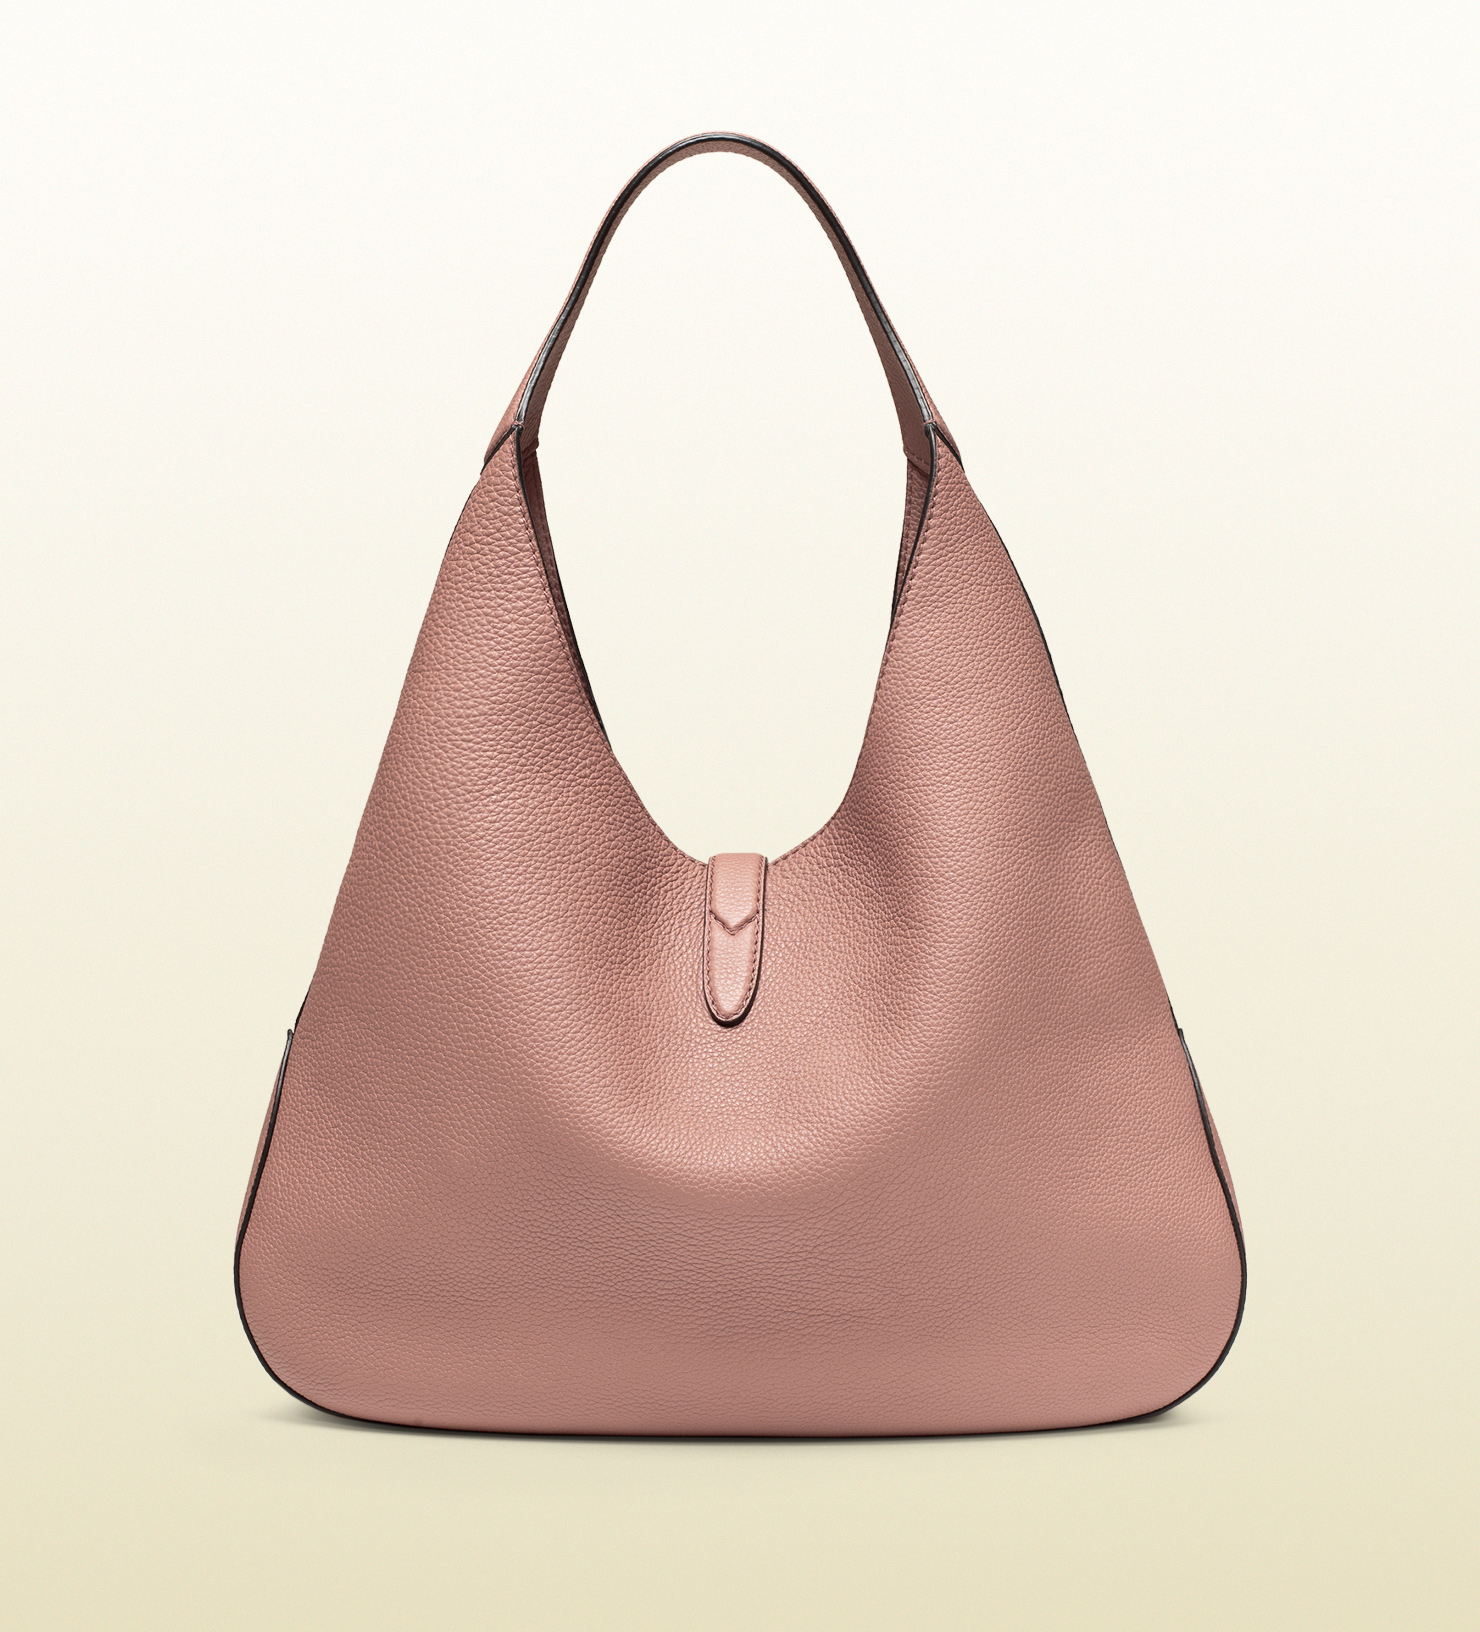 Lyst - Gucci Jackie Soft Leather Hobo in Pink aadcfca55e